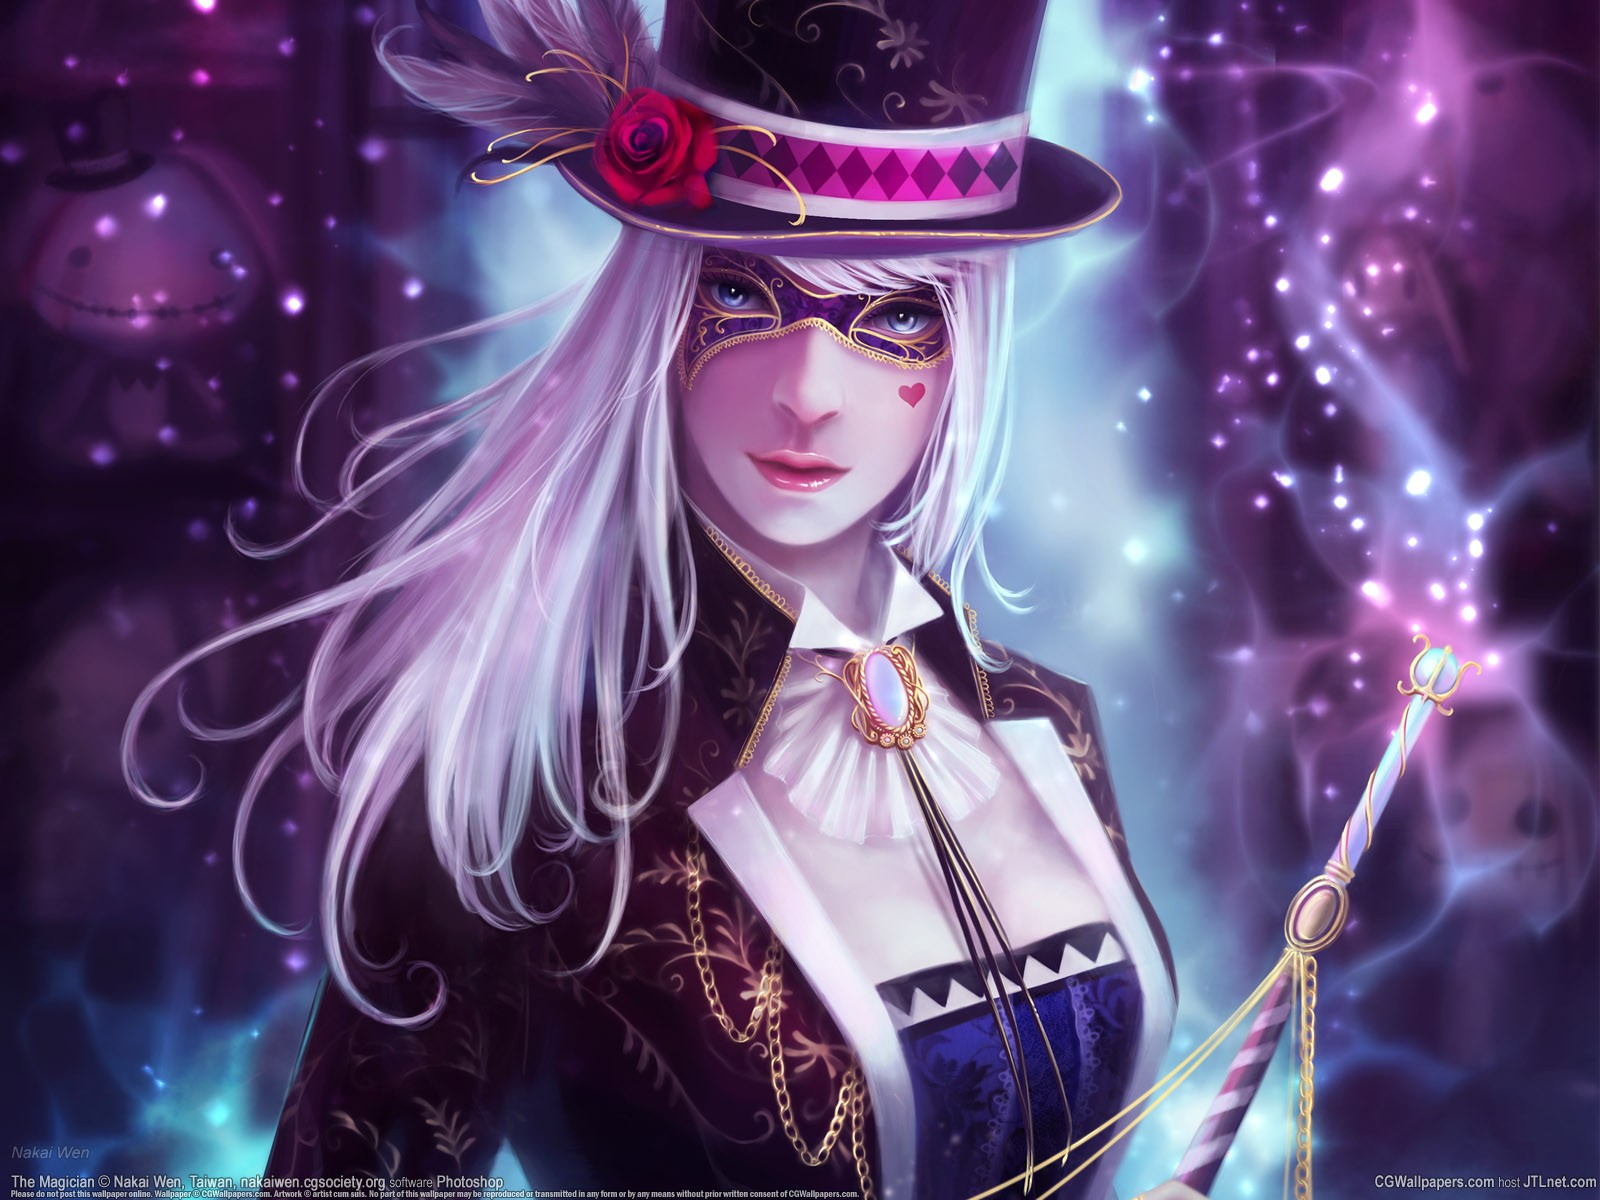 Magical Fantasy Hd Wallpapers That Will Take Your Breathe